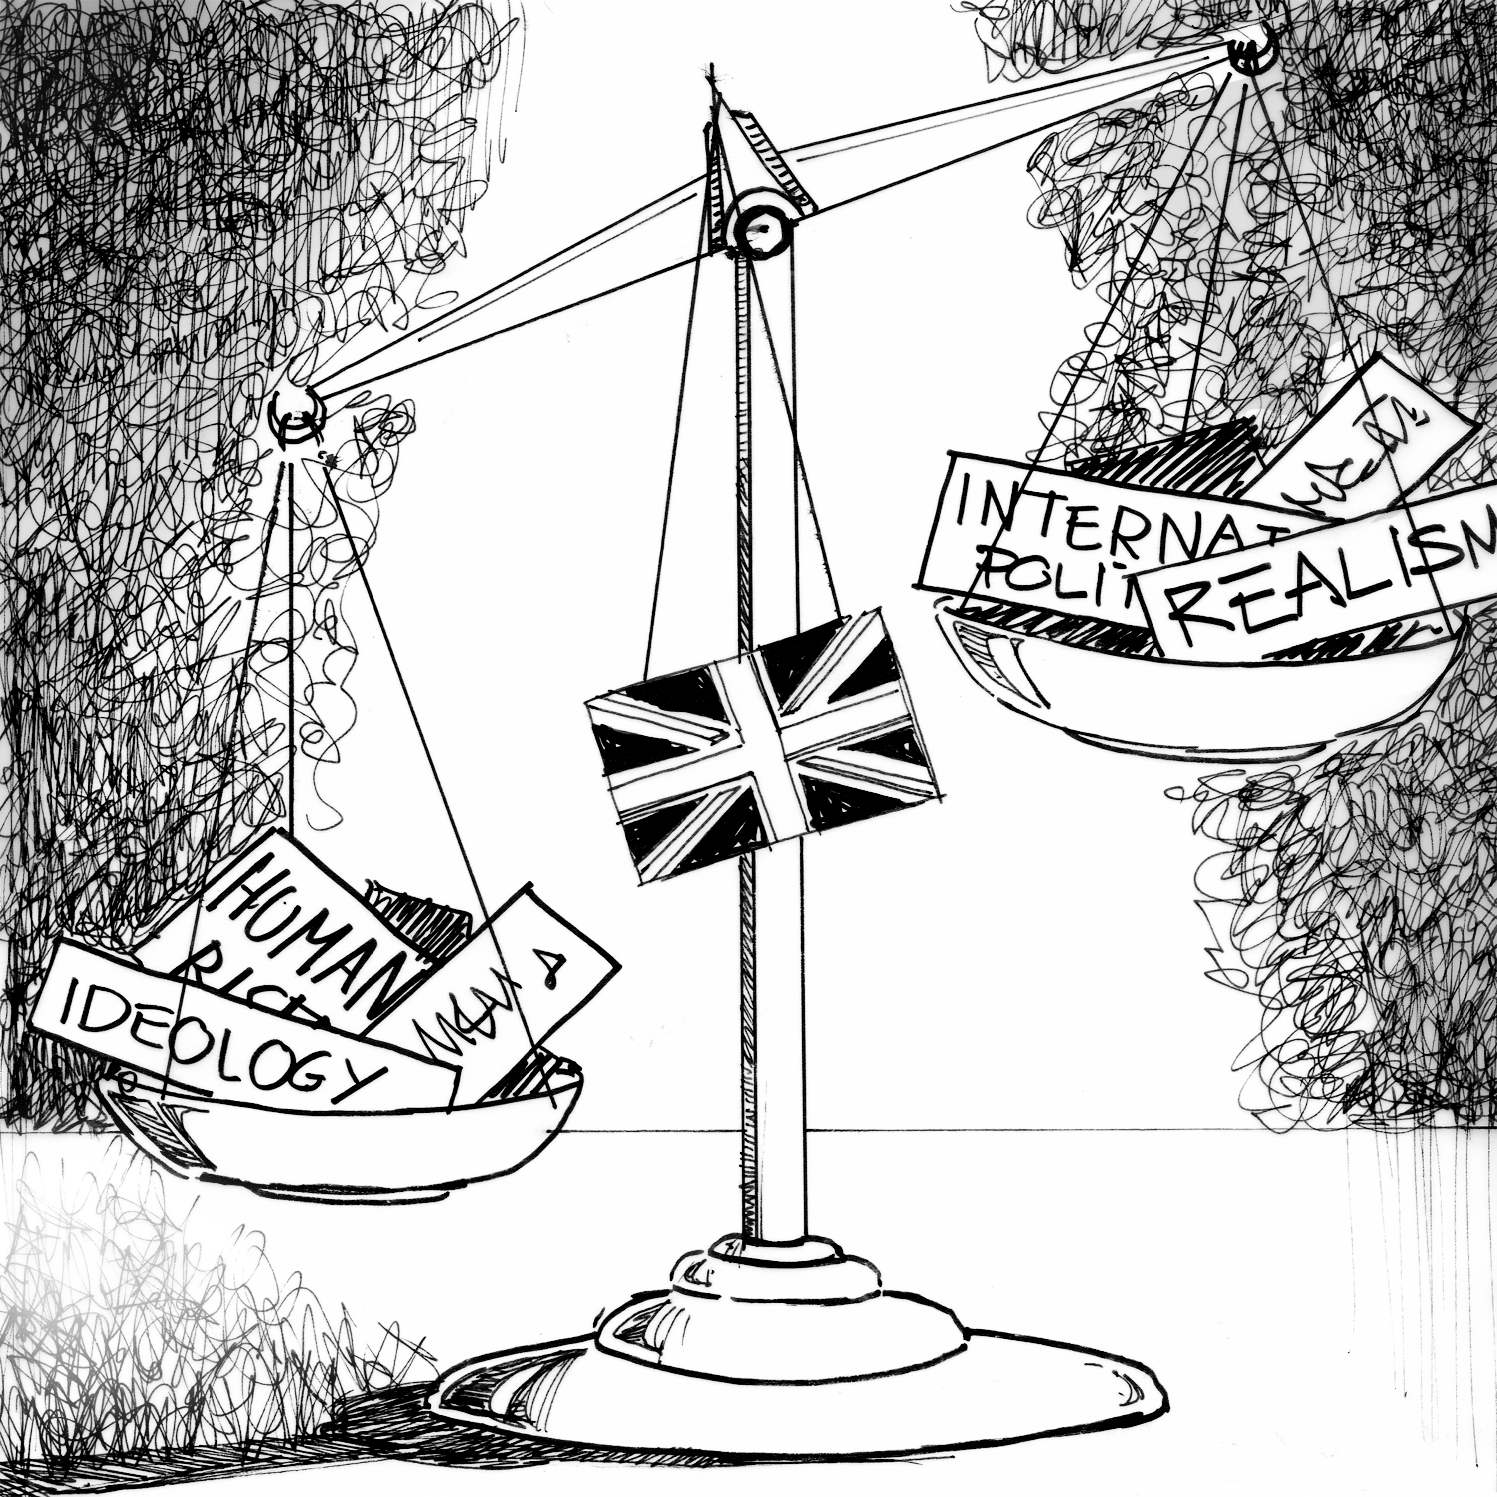 British Court Values Human Rights Over Diplomacy | Daily Trojan